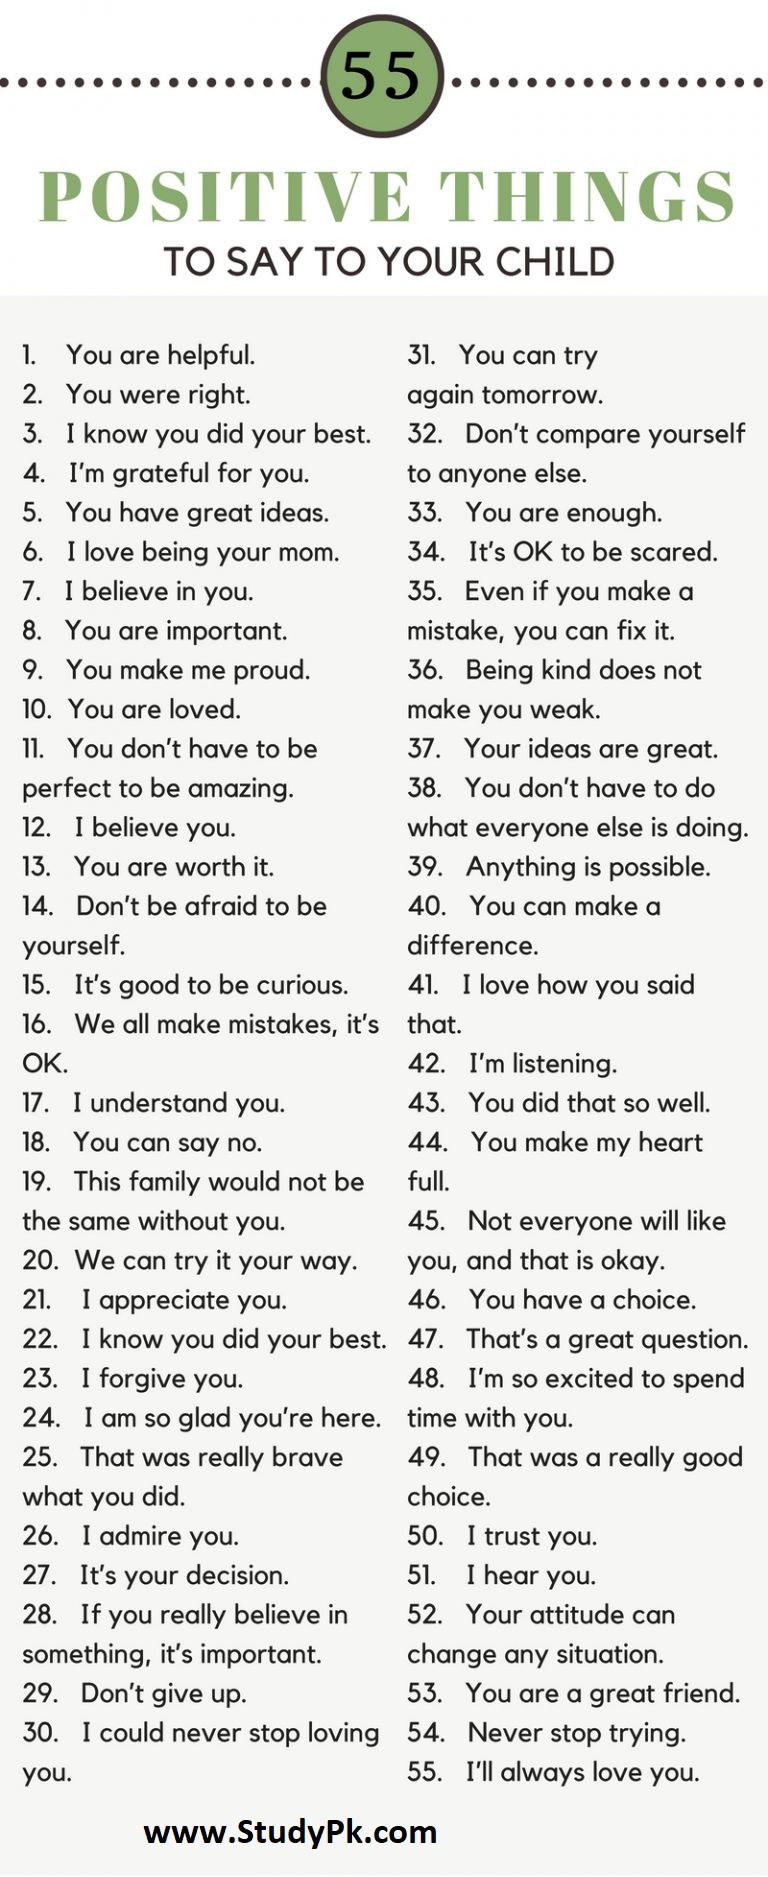 Encouraging Words & Phrases! 55 Positive Things To Say To Your Child